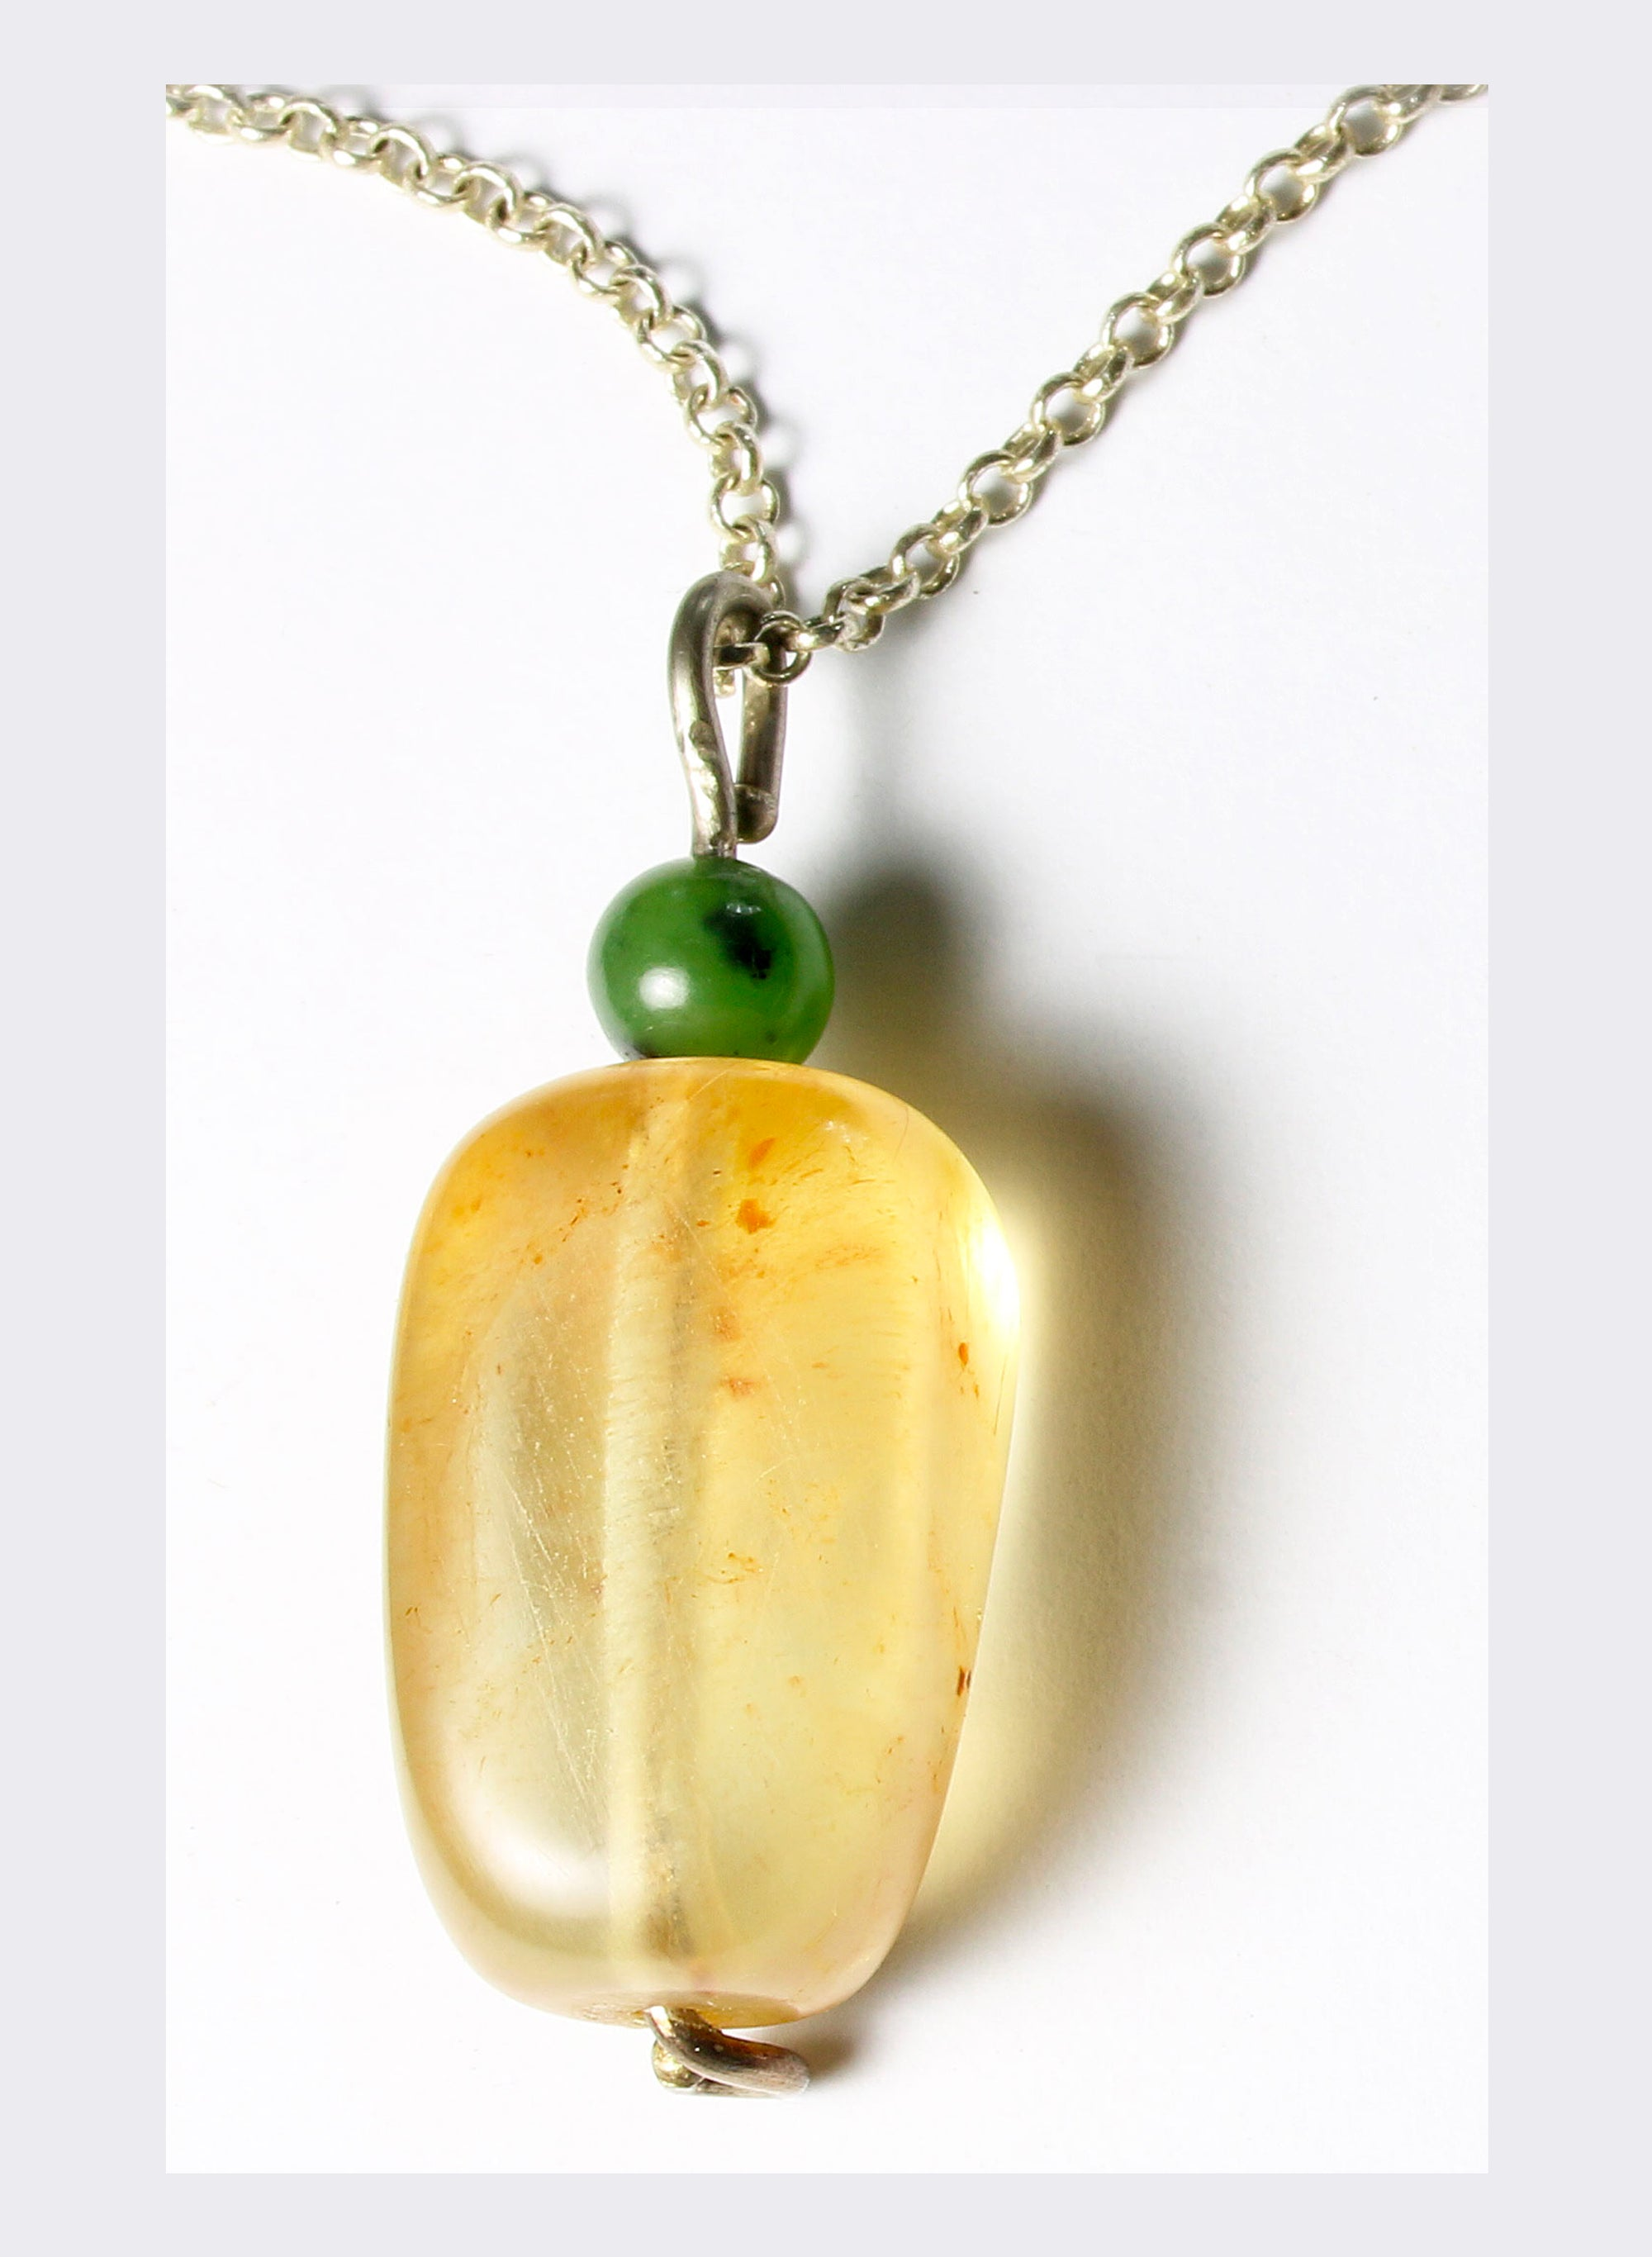 Kauri Gum and Pounamu Pendant with Sterling Silver Chain